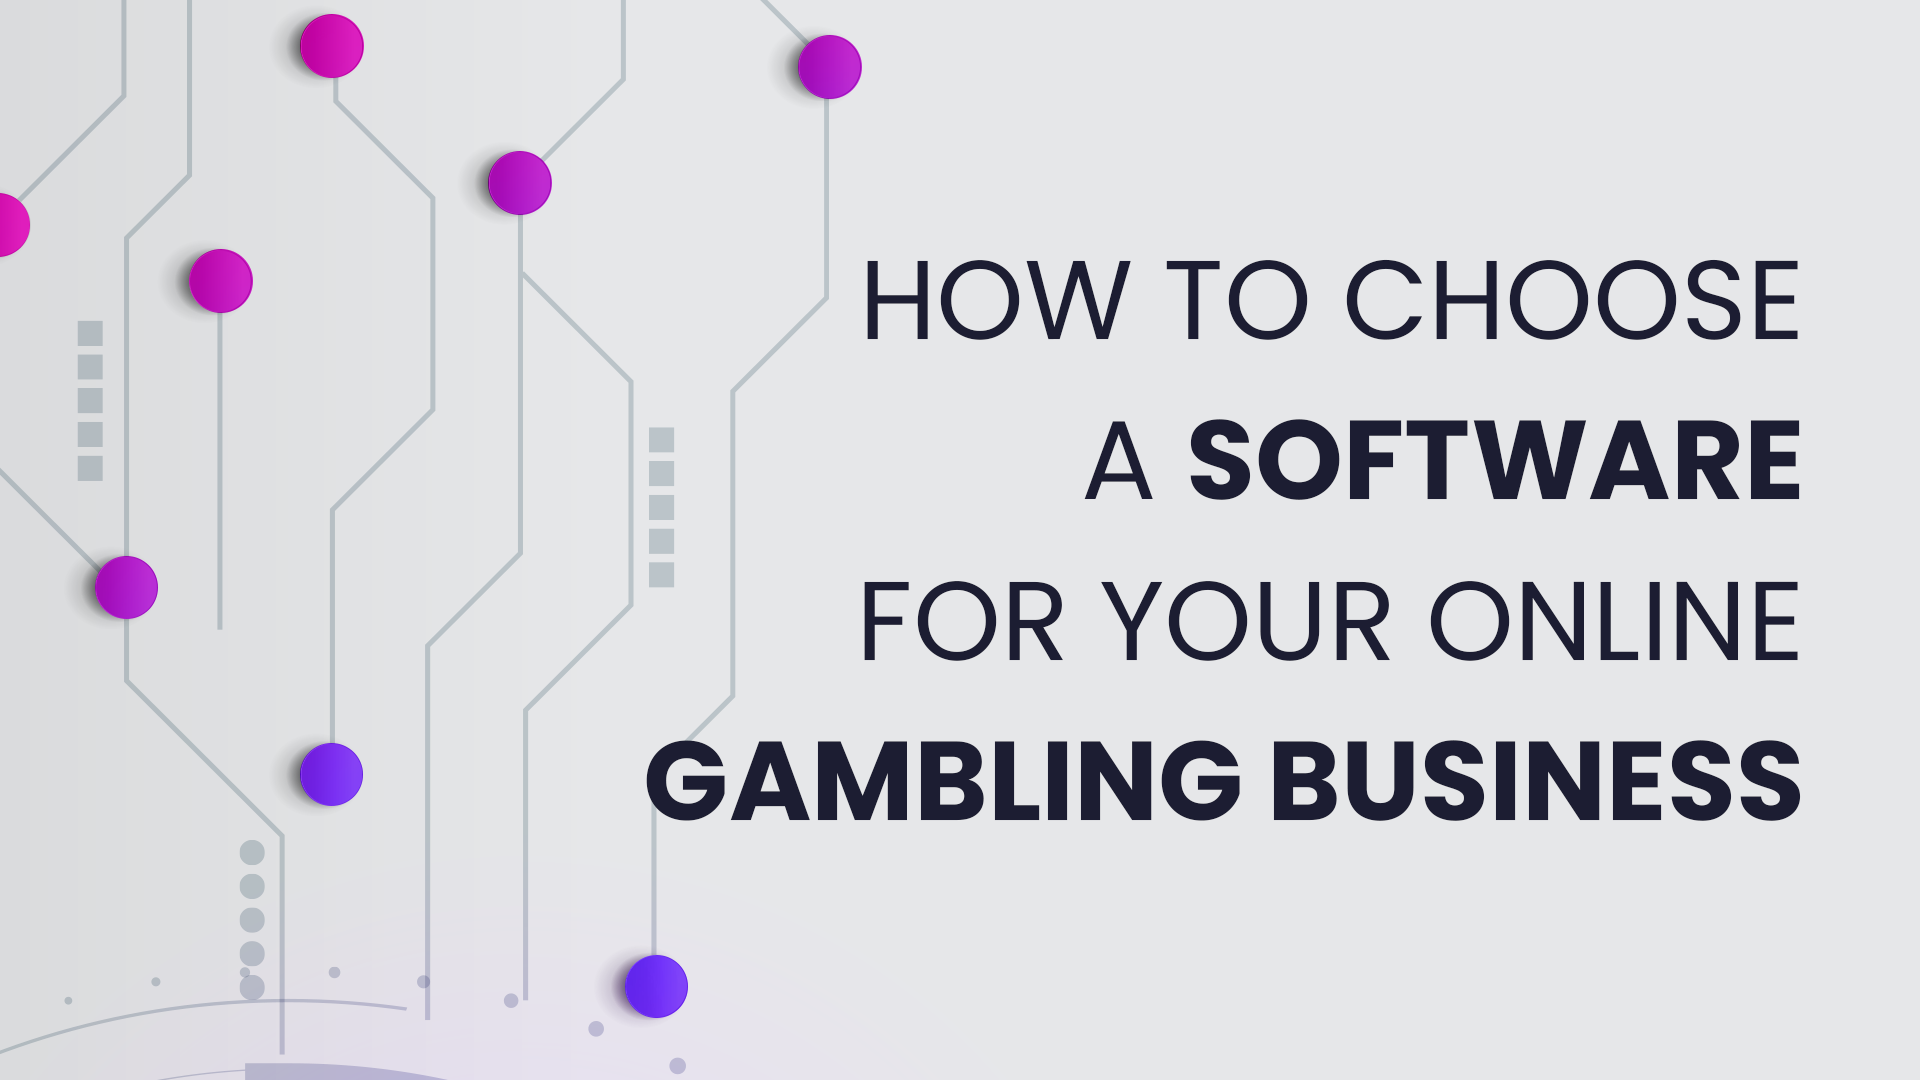 How to Choose a Software for Your Online Gambling Business